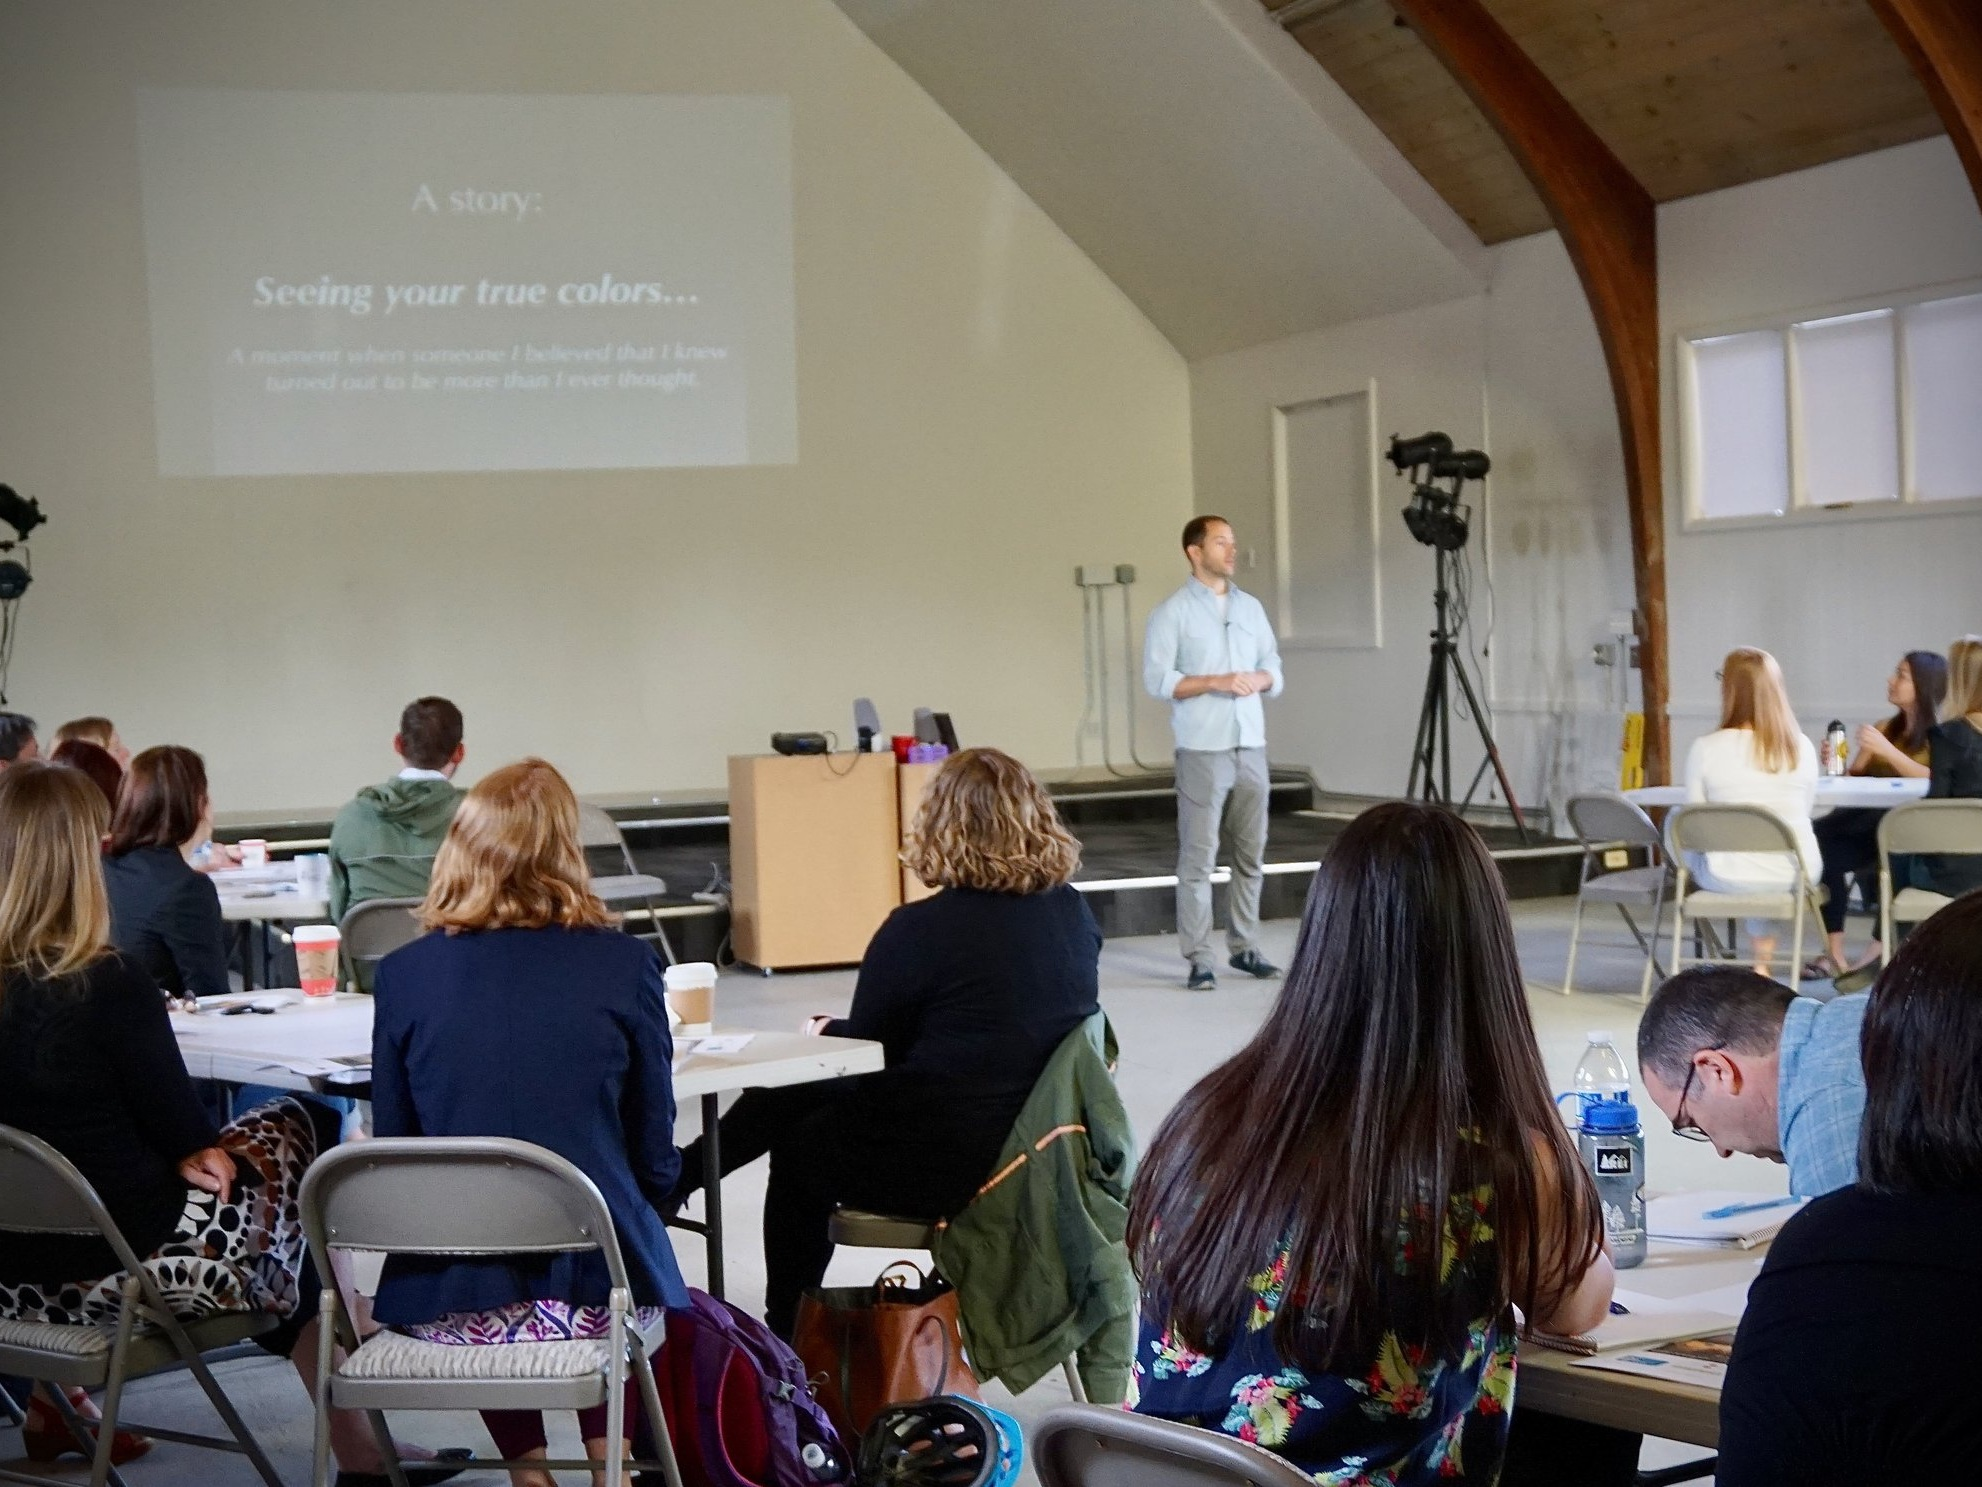 Ryan+Conarro+leads+a+Story+Facilitation+Workshop+for+Cook+Inlet+Housing+Authority+staff+in+Anchorage%2C+photo+by+Sezy+Gerow-Hanson.jpg